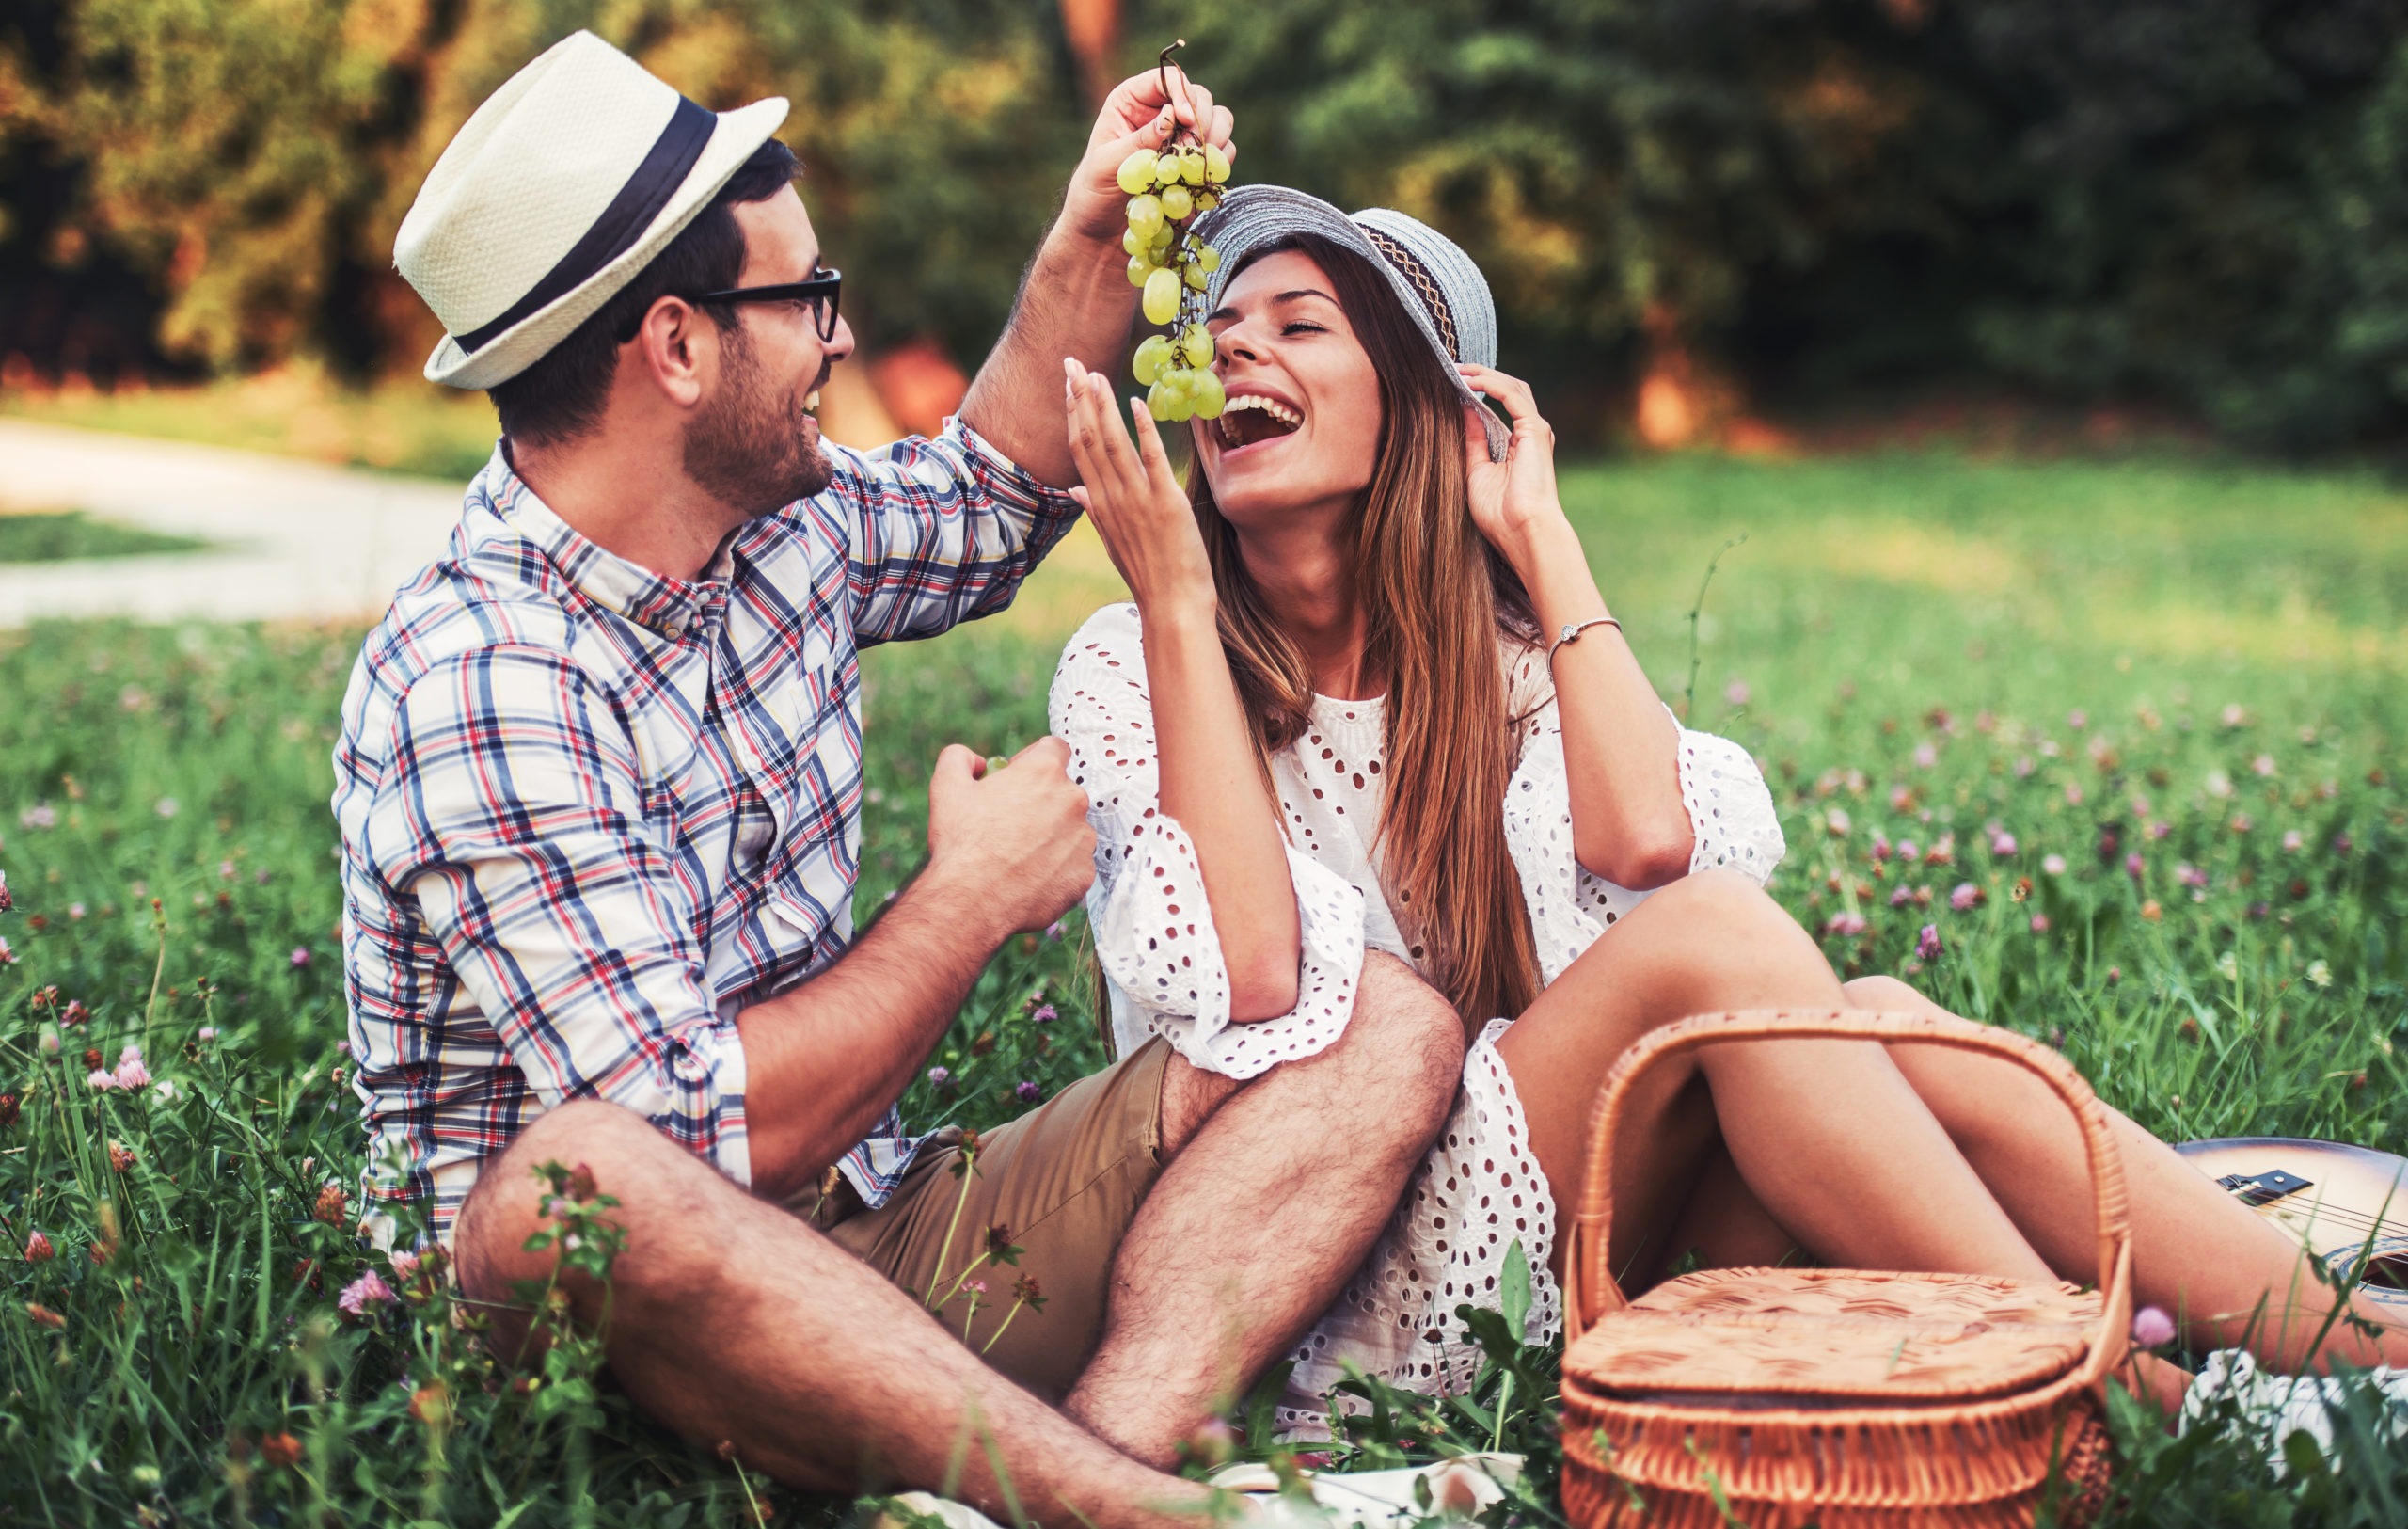 Picnic,Time.,Young,Couple,Eating,Grapes,And,Enjoying,In,Picnic.